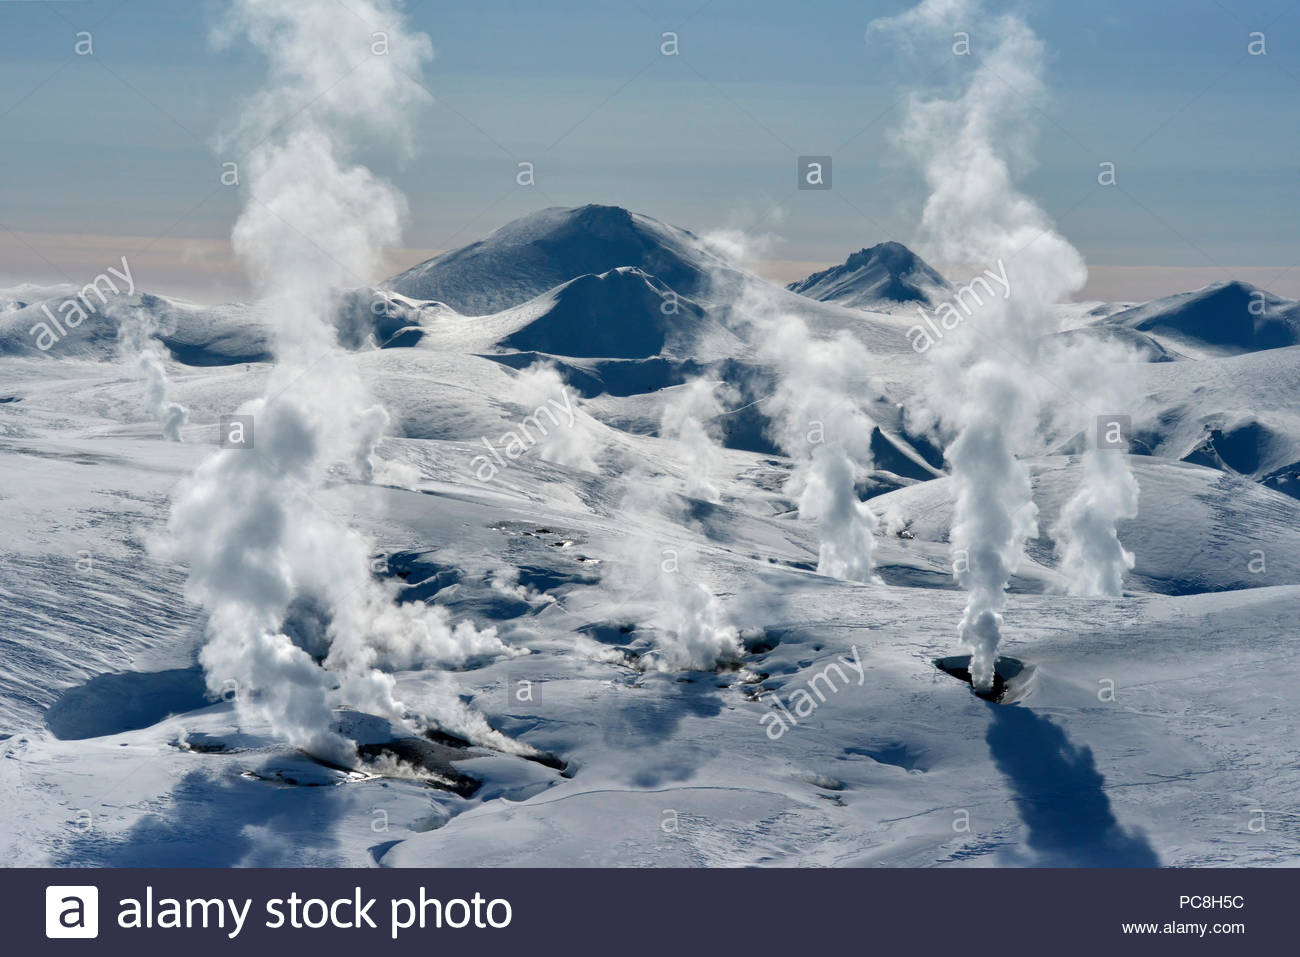 Elevated view of steam vents at Hrafntinnusker Thermal area in Iceland. - Stock Image